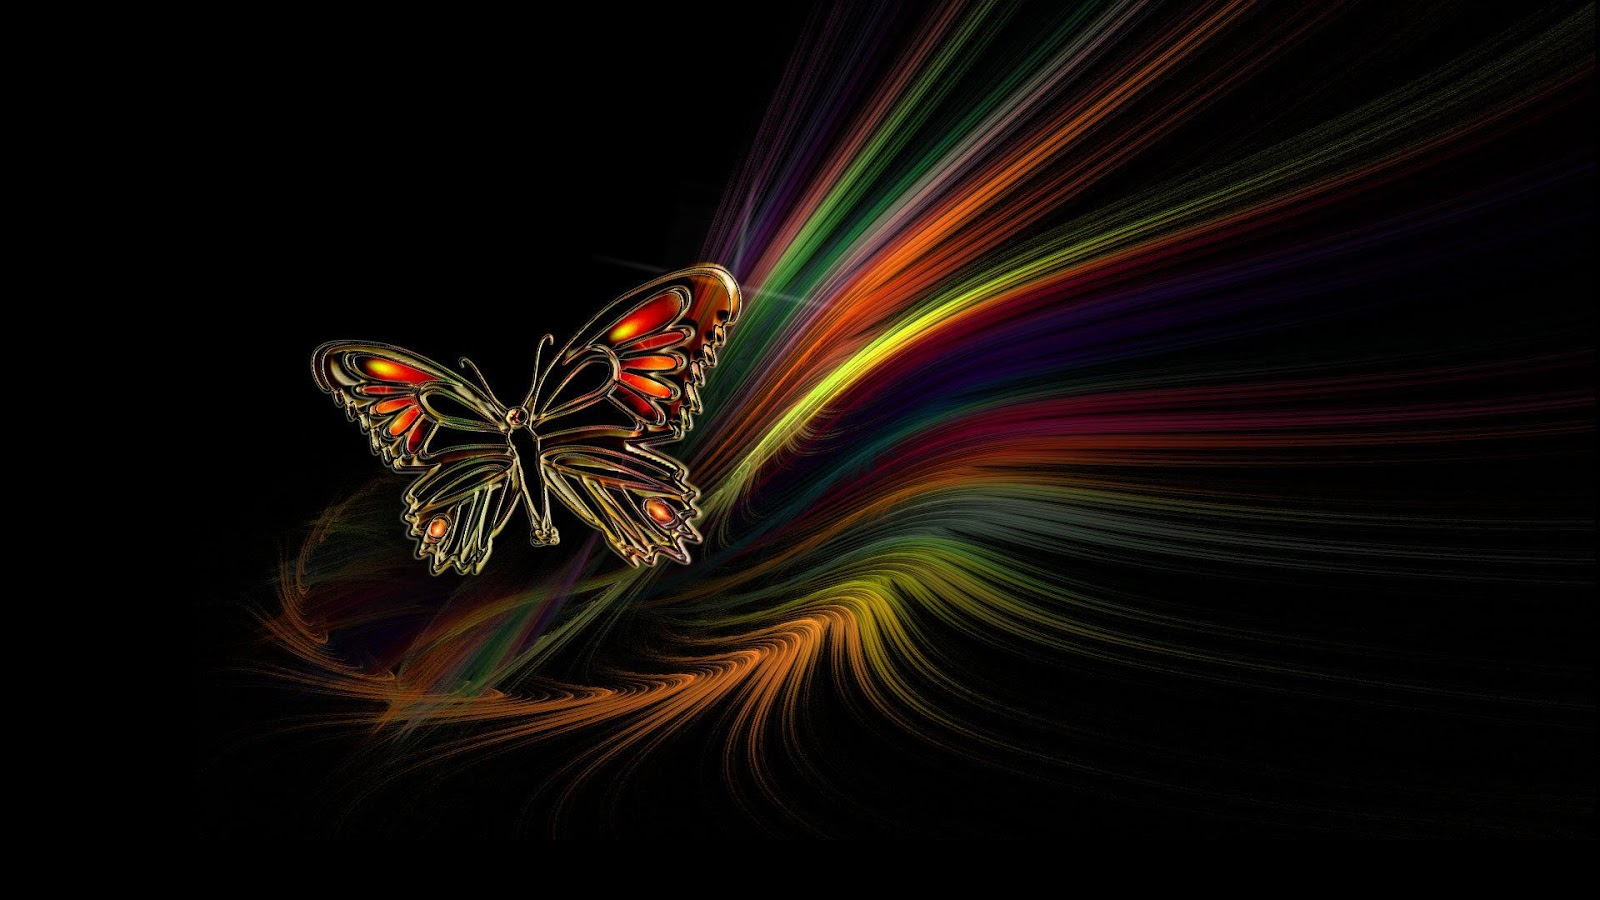 dark butterfly wallpaper desktop - photo #14